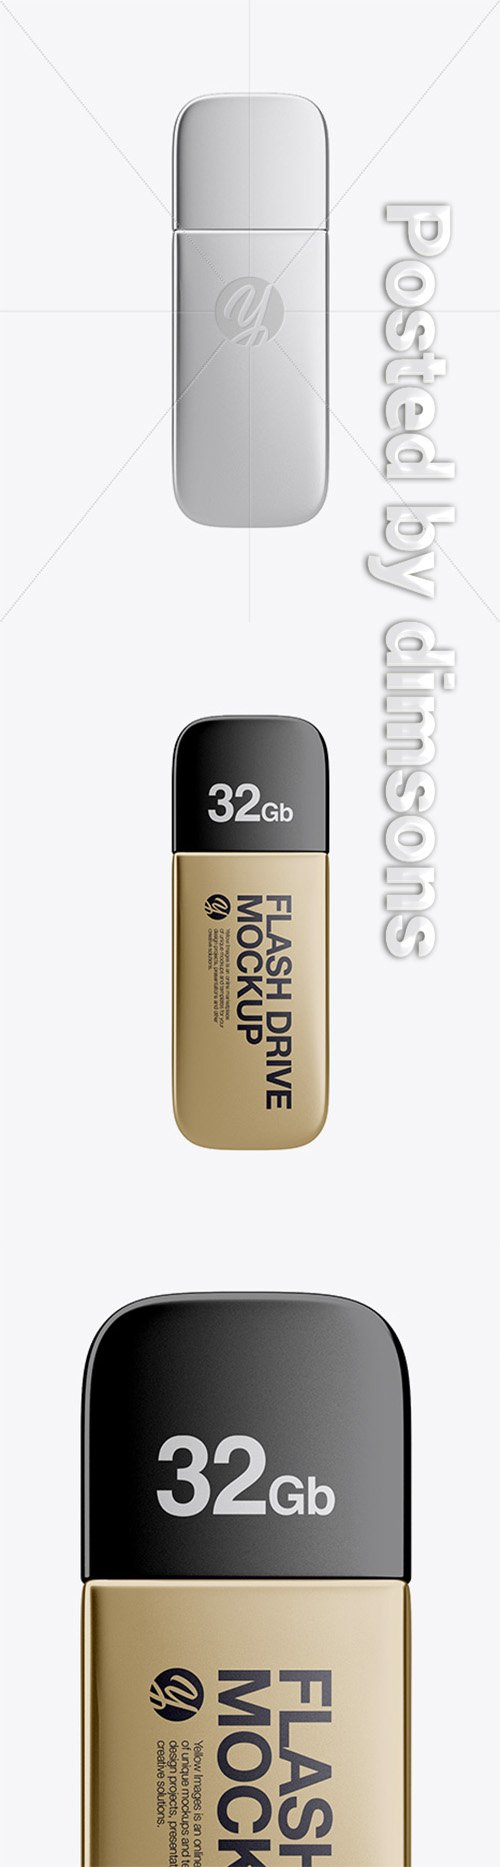 Metallic USB Flash Drive Mockup - Top View 32648 TIF